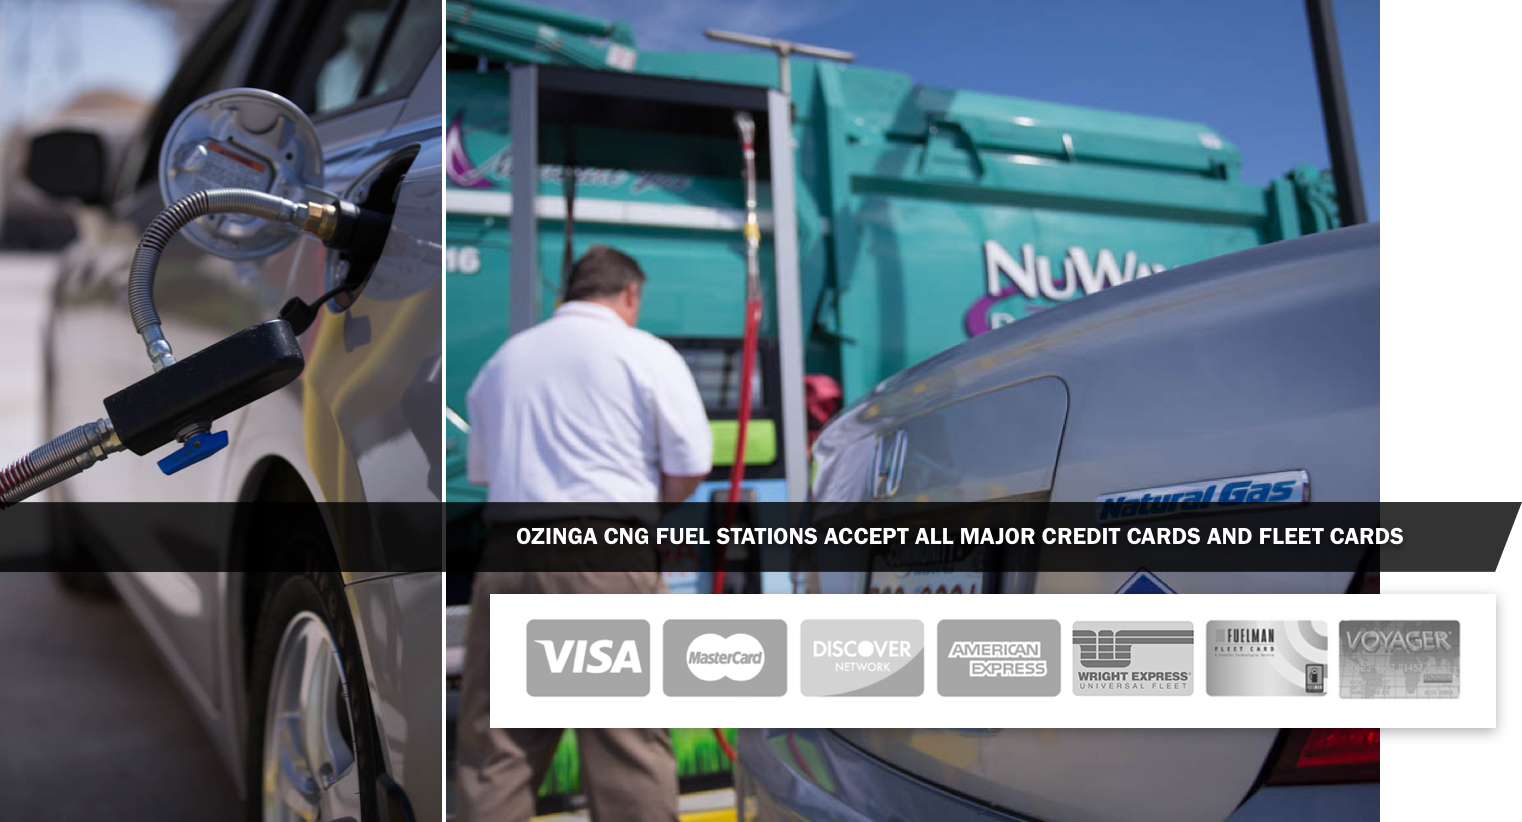 energy CNG fueling energy CNG fueling credit card